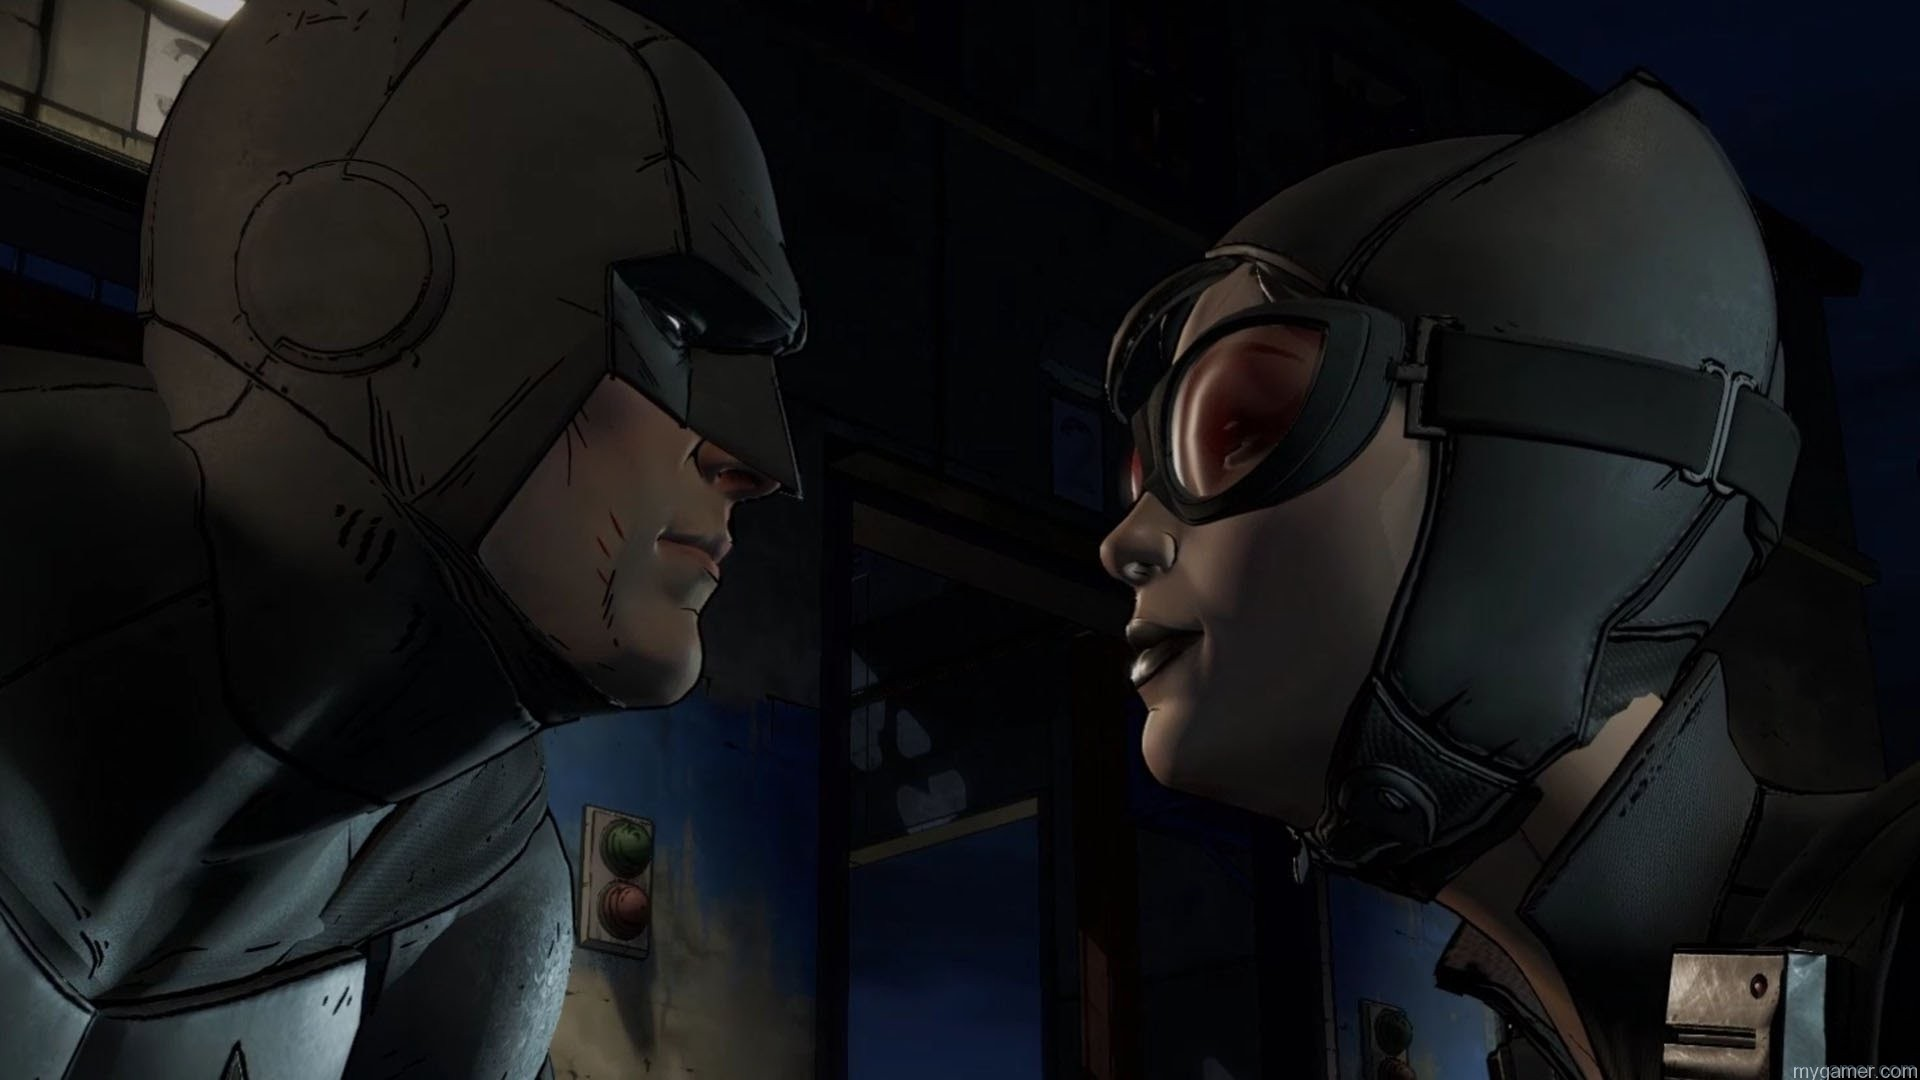 batman-ep-2 Batman: The Telltale Series Episode 2 Review Batman: The Telltale Series Episode 2 The Children of Arkham Review Batman Ep 2